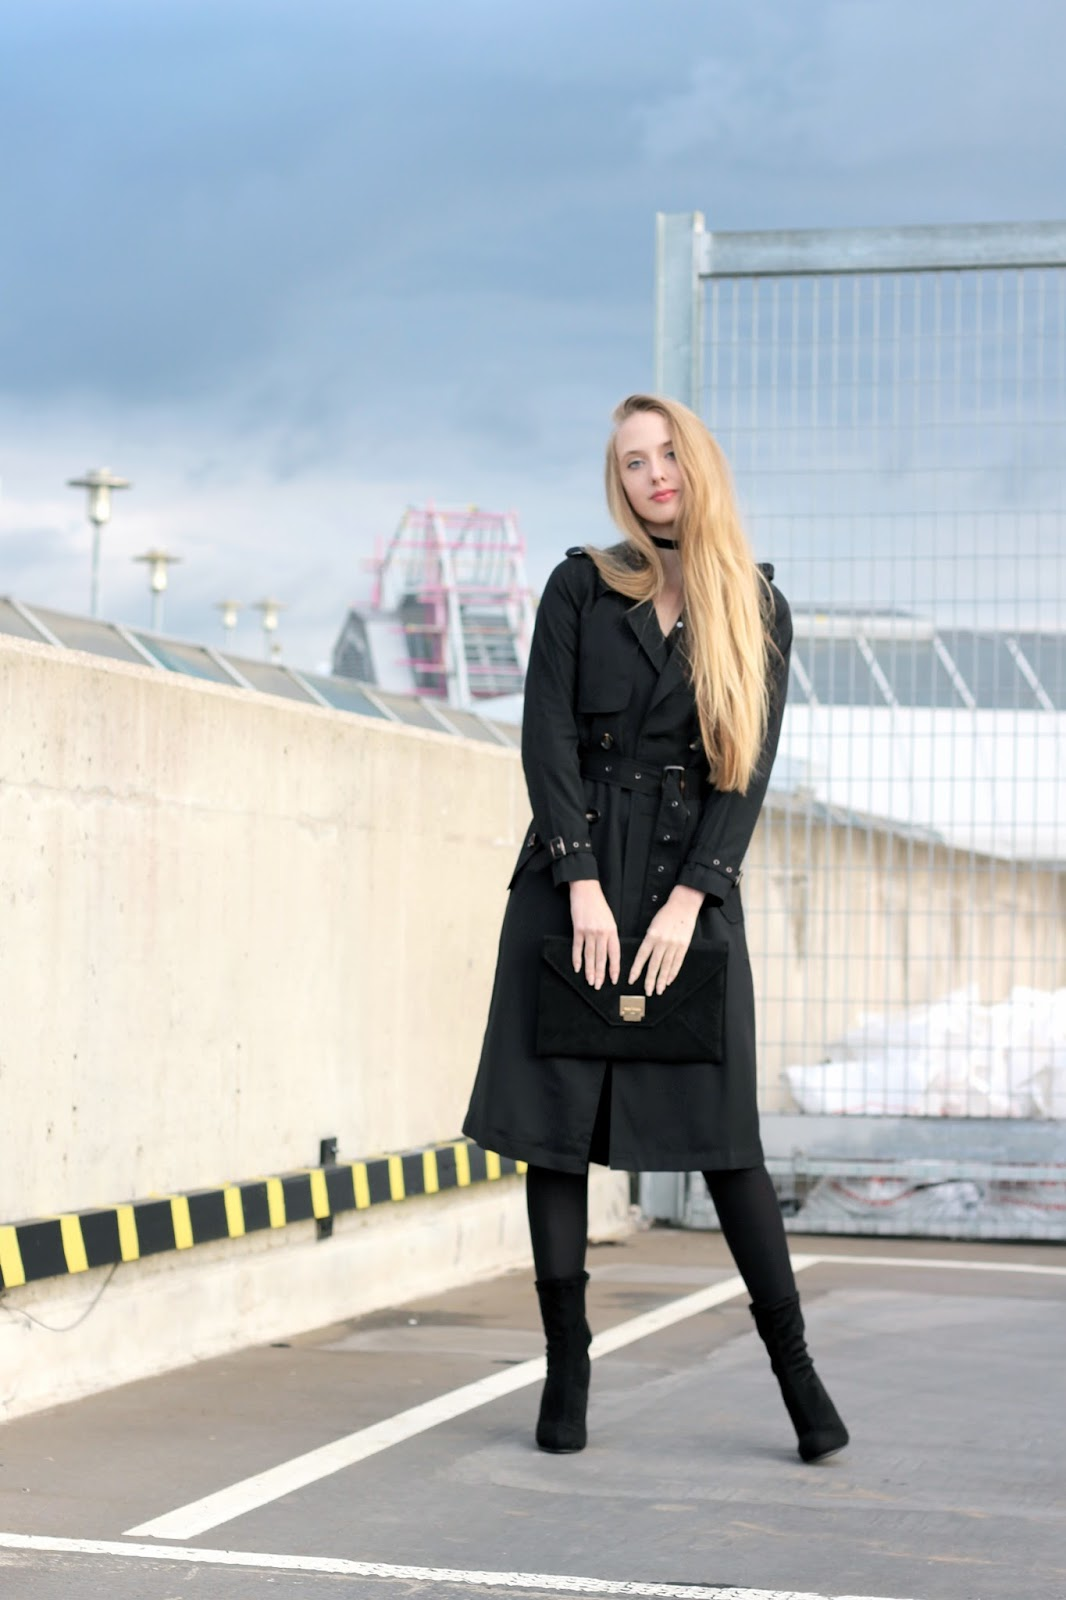 Styling a Boohoo trench coat for autumn fashion blogger